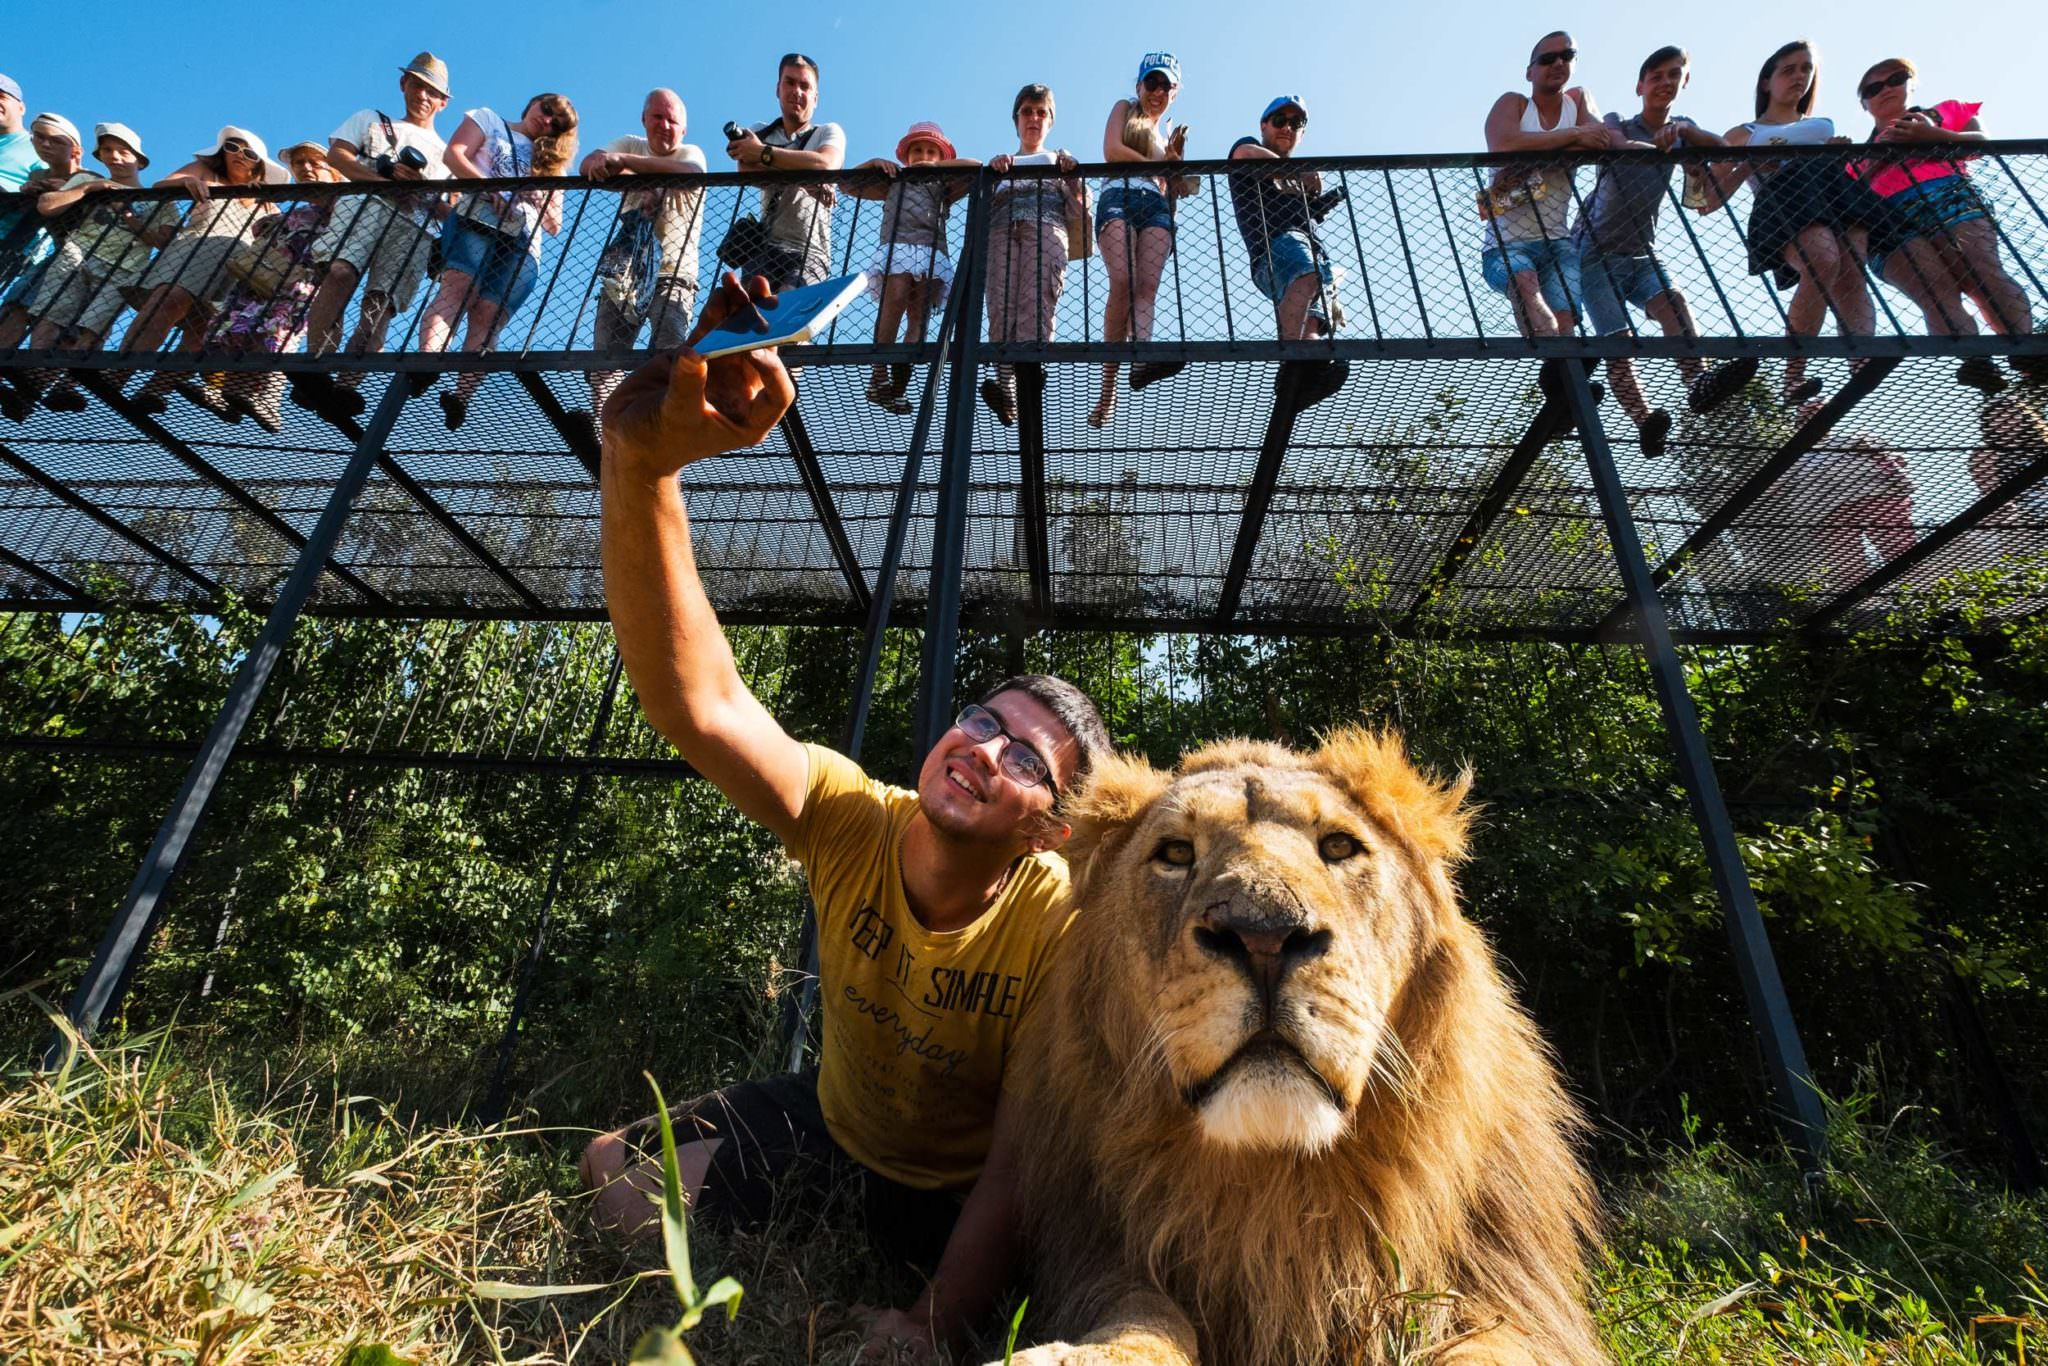 A young man taking a selfie of himself with a lion using his mobile phone